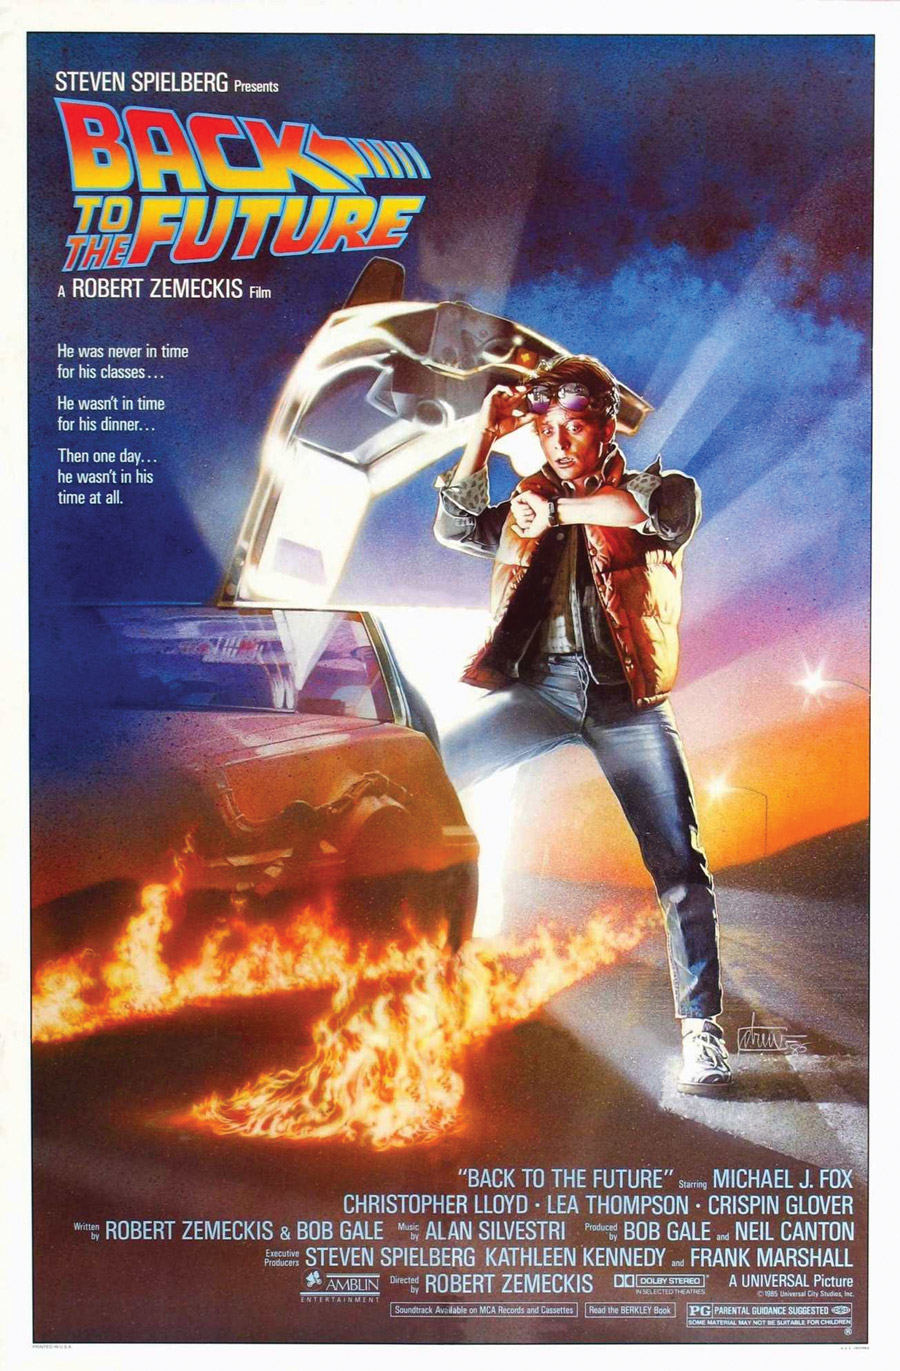 Back to the Future Movie Image